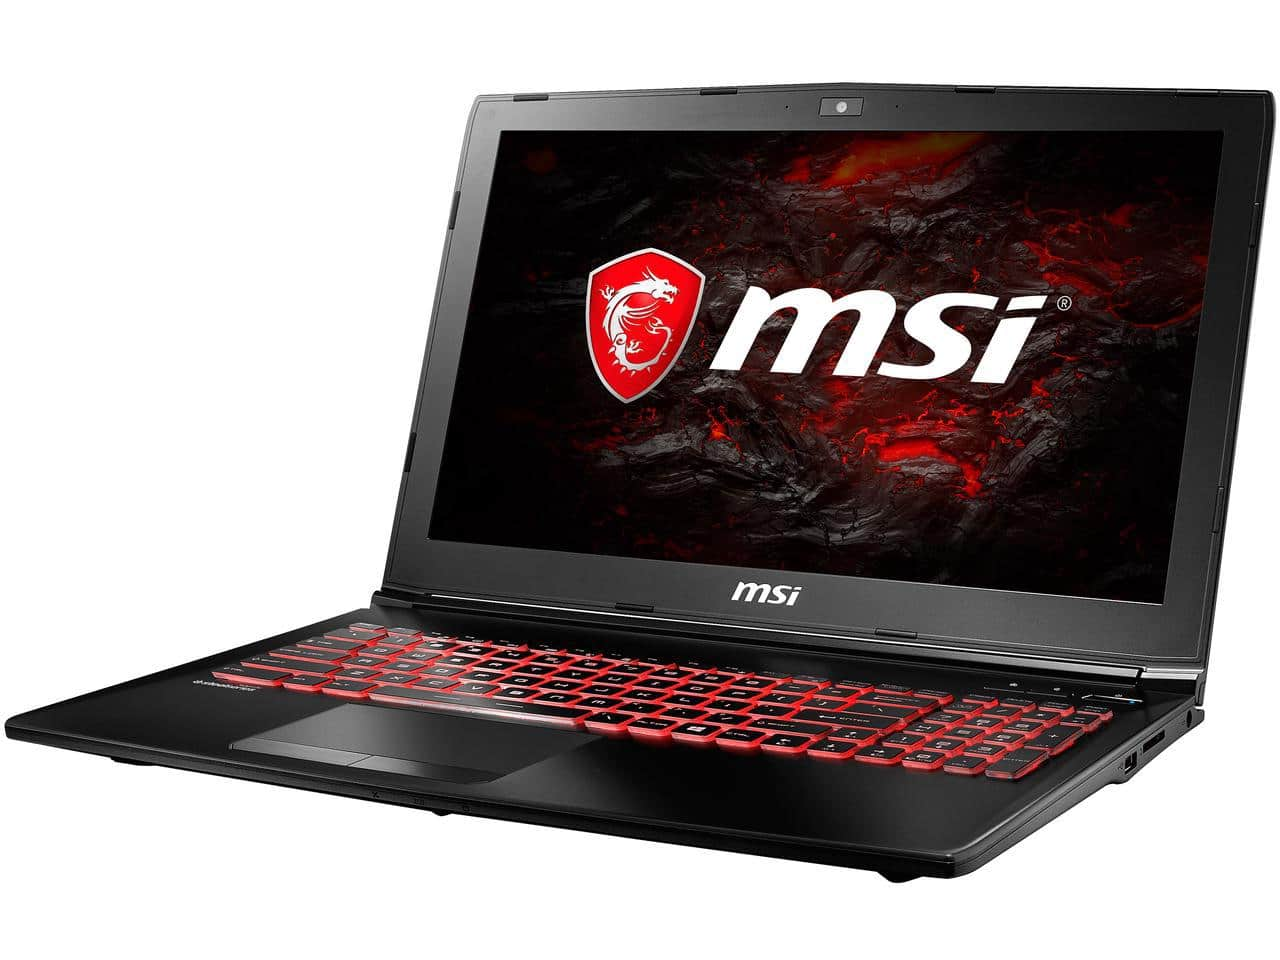 "MSI GL62M 7RDX-NE1050i7 15.6"" Intel Core i7 7th Gen 7700HQ Gaming Laptop - $719.00 After MIR/PC"